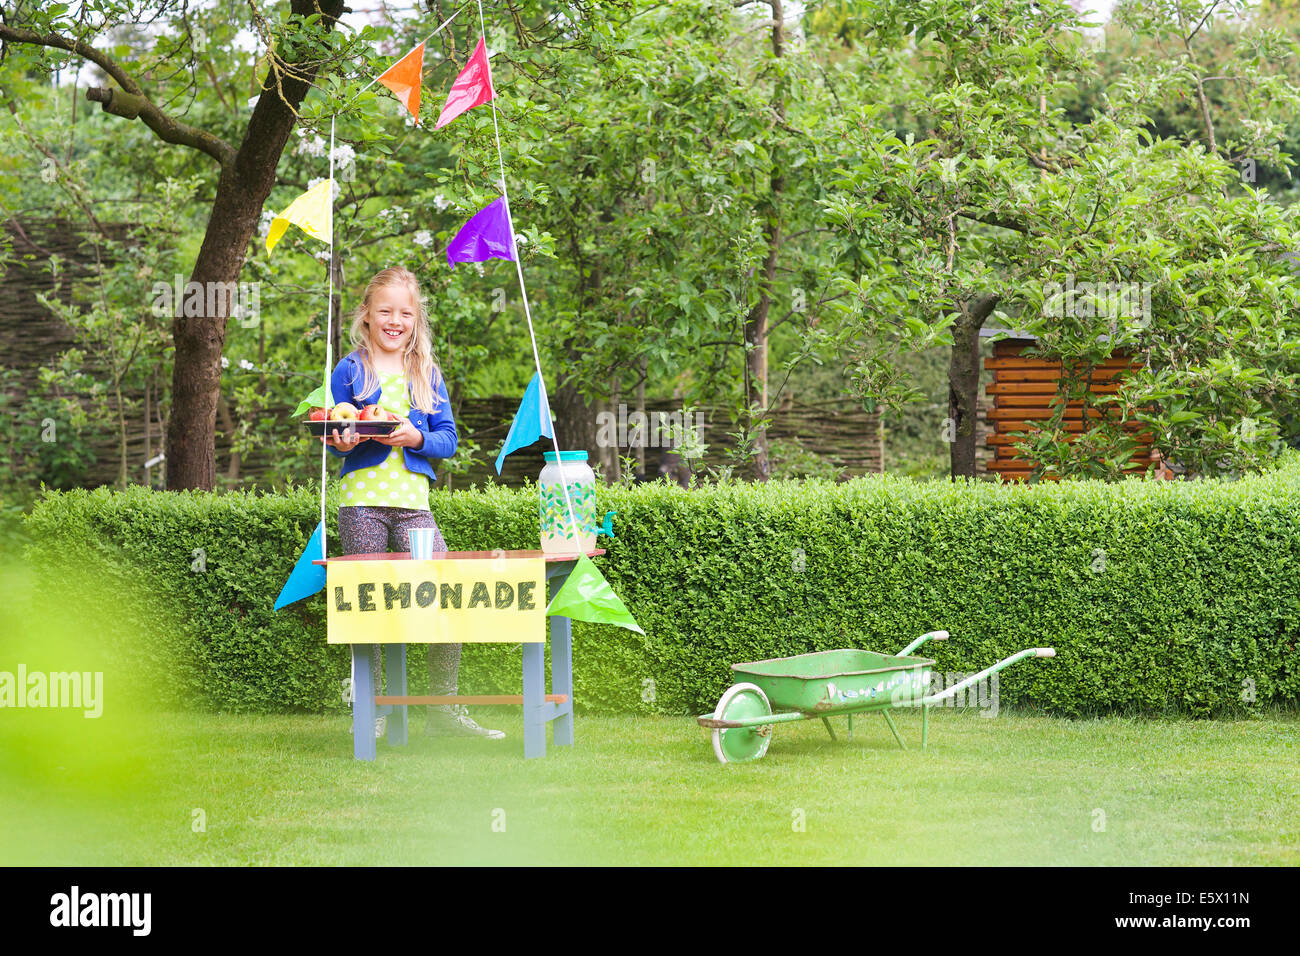 Lemonade stand girl with tray of apples behind her stand Stock Photo